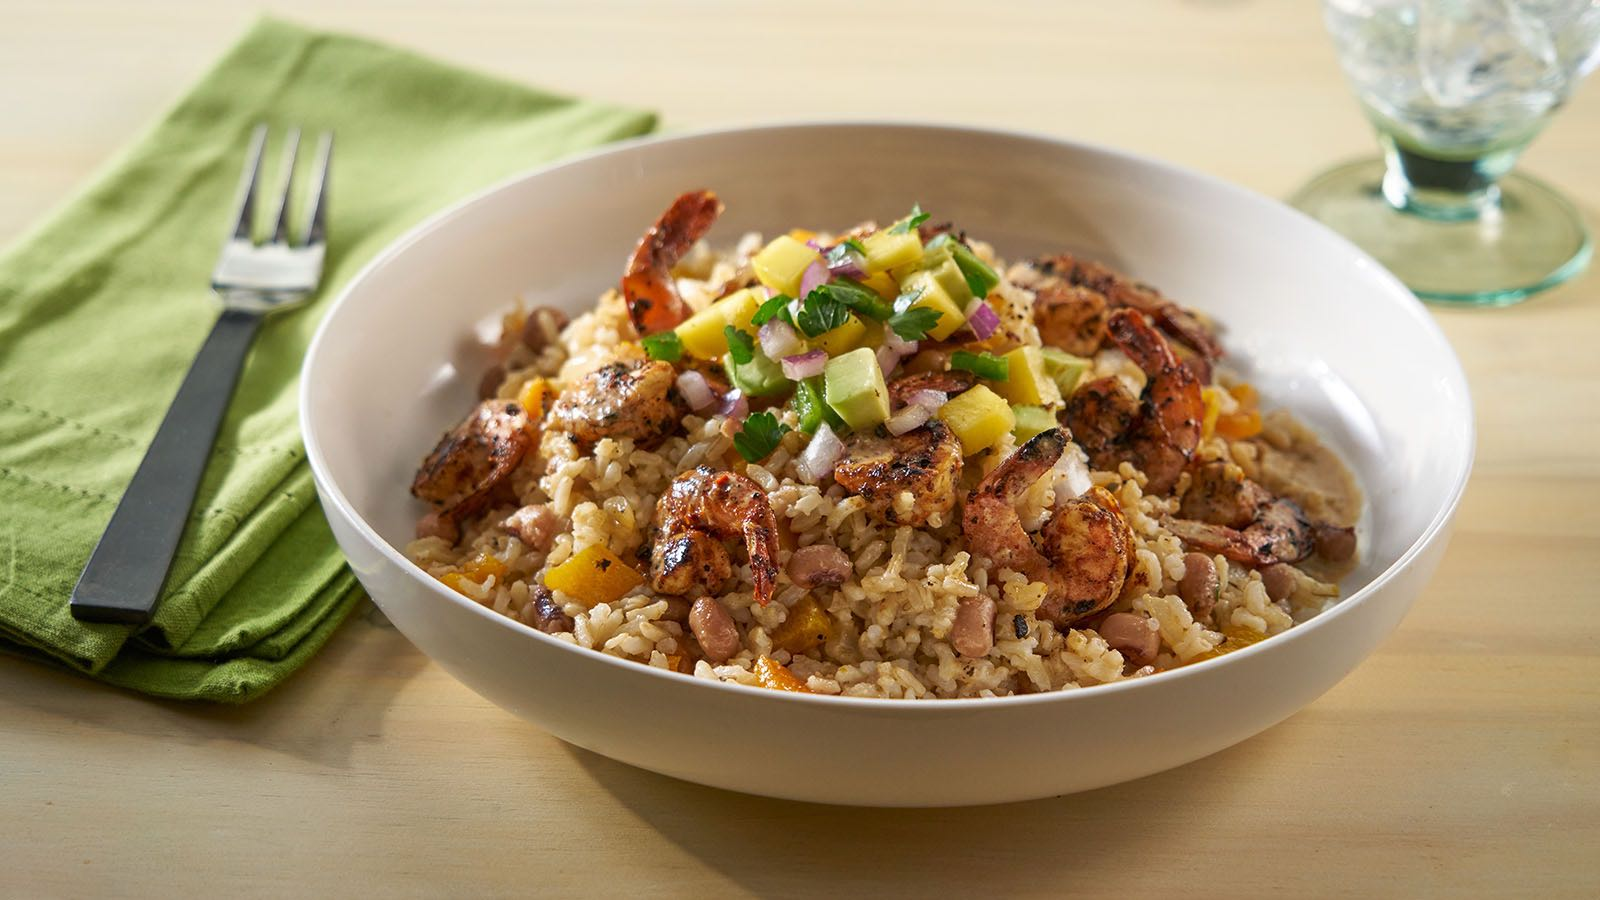 Carribean Shrimp and Rice Side